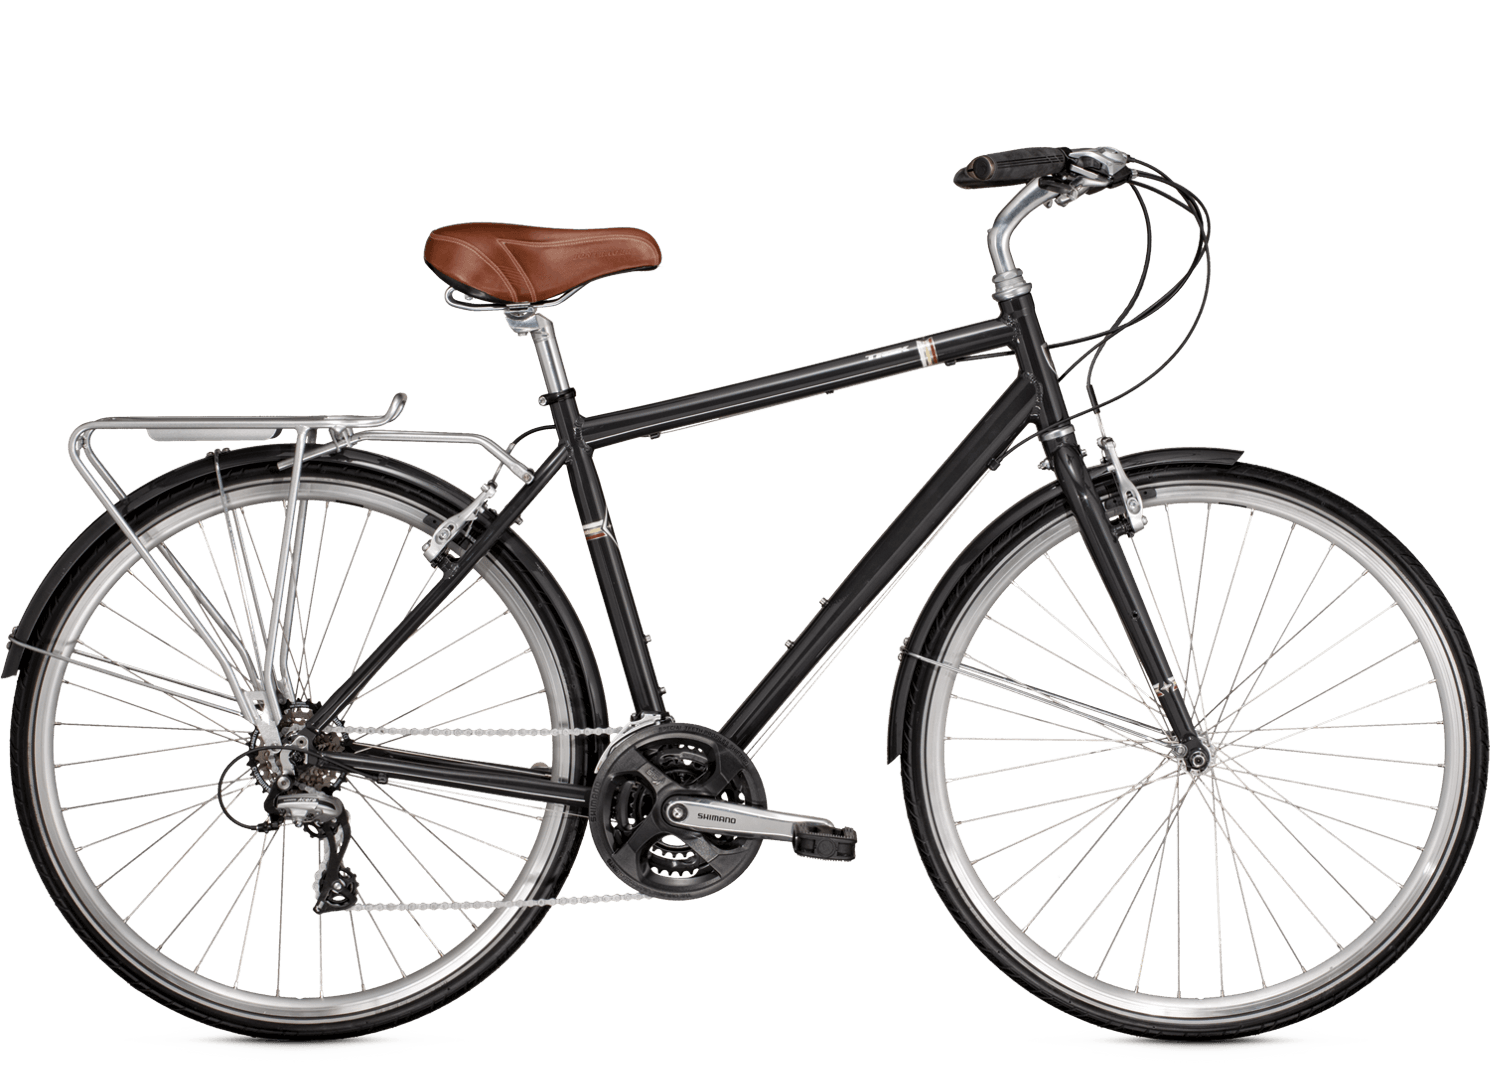 Vintage black bicycle transparent. Cycle clipart antique bike svg black and white